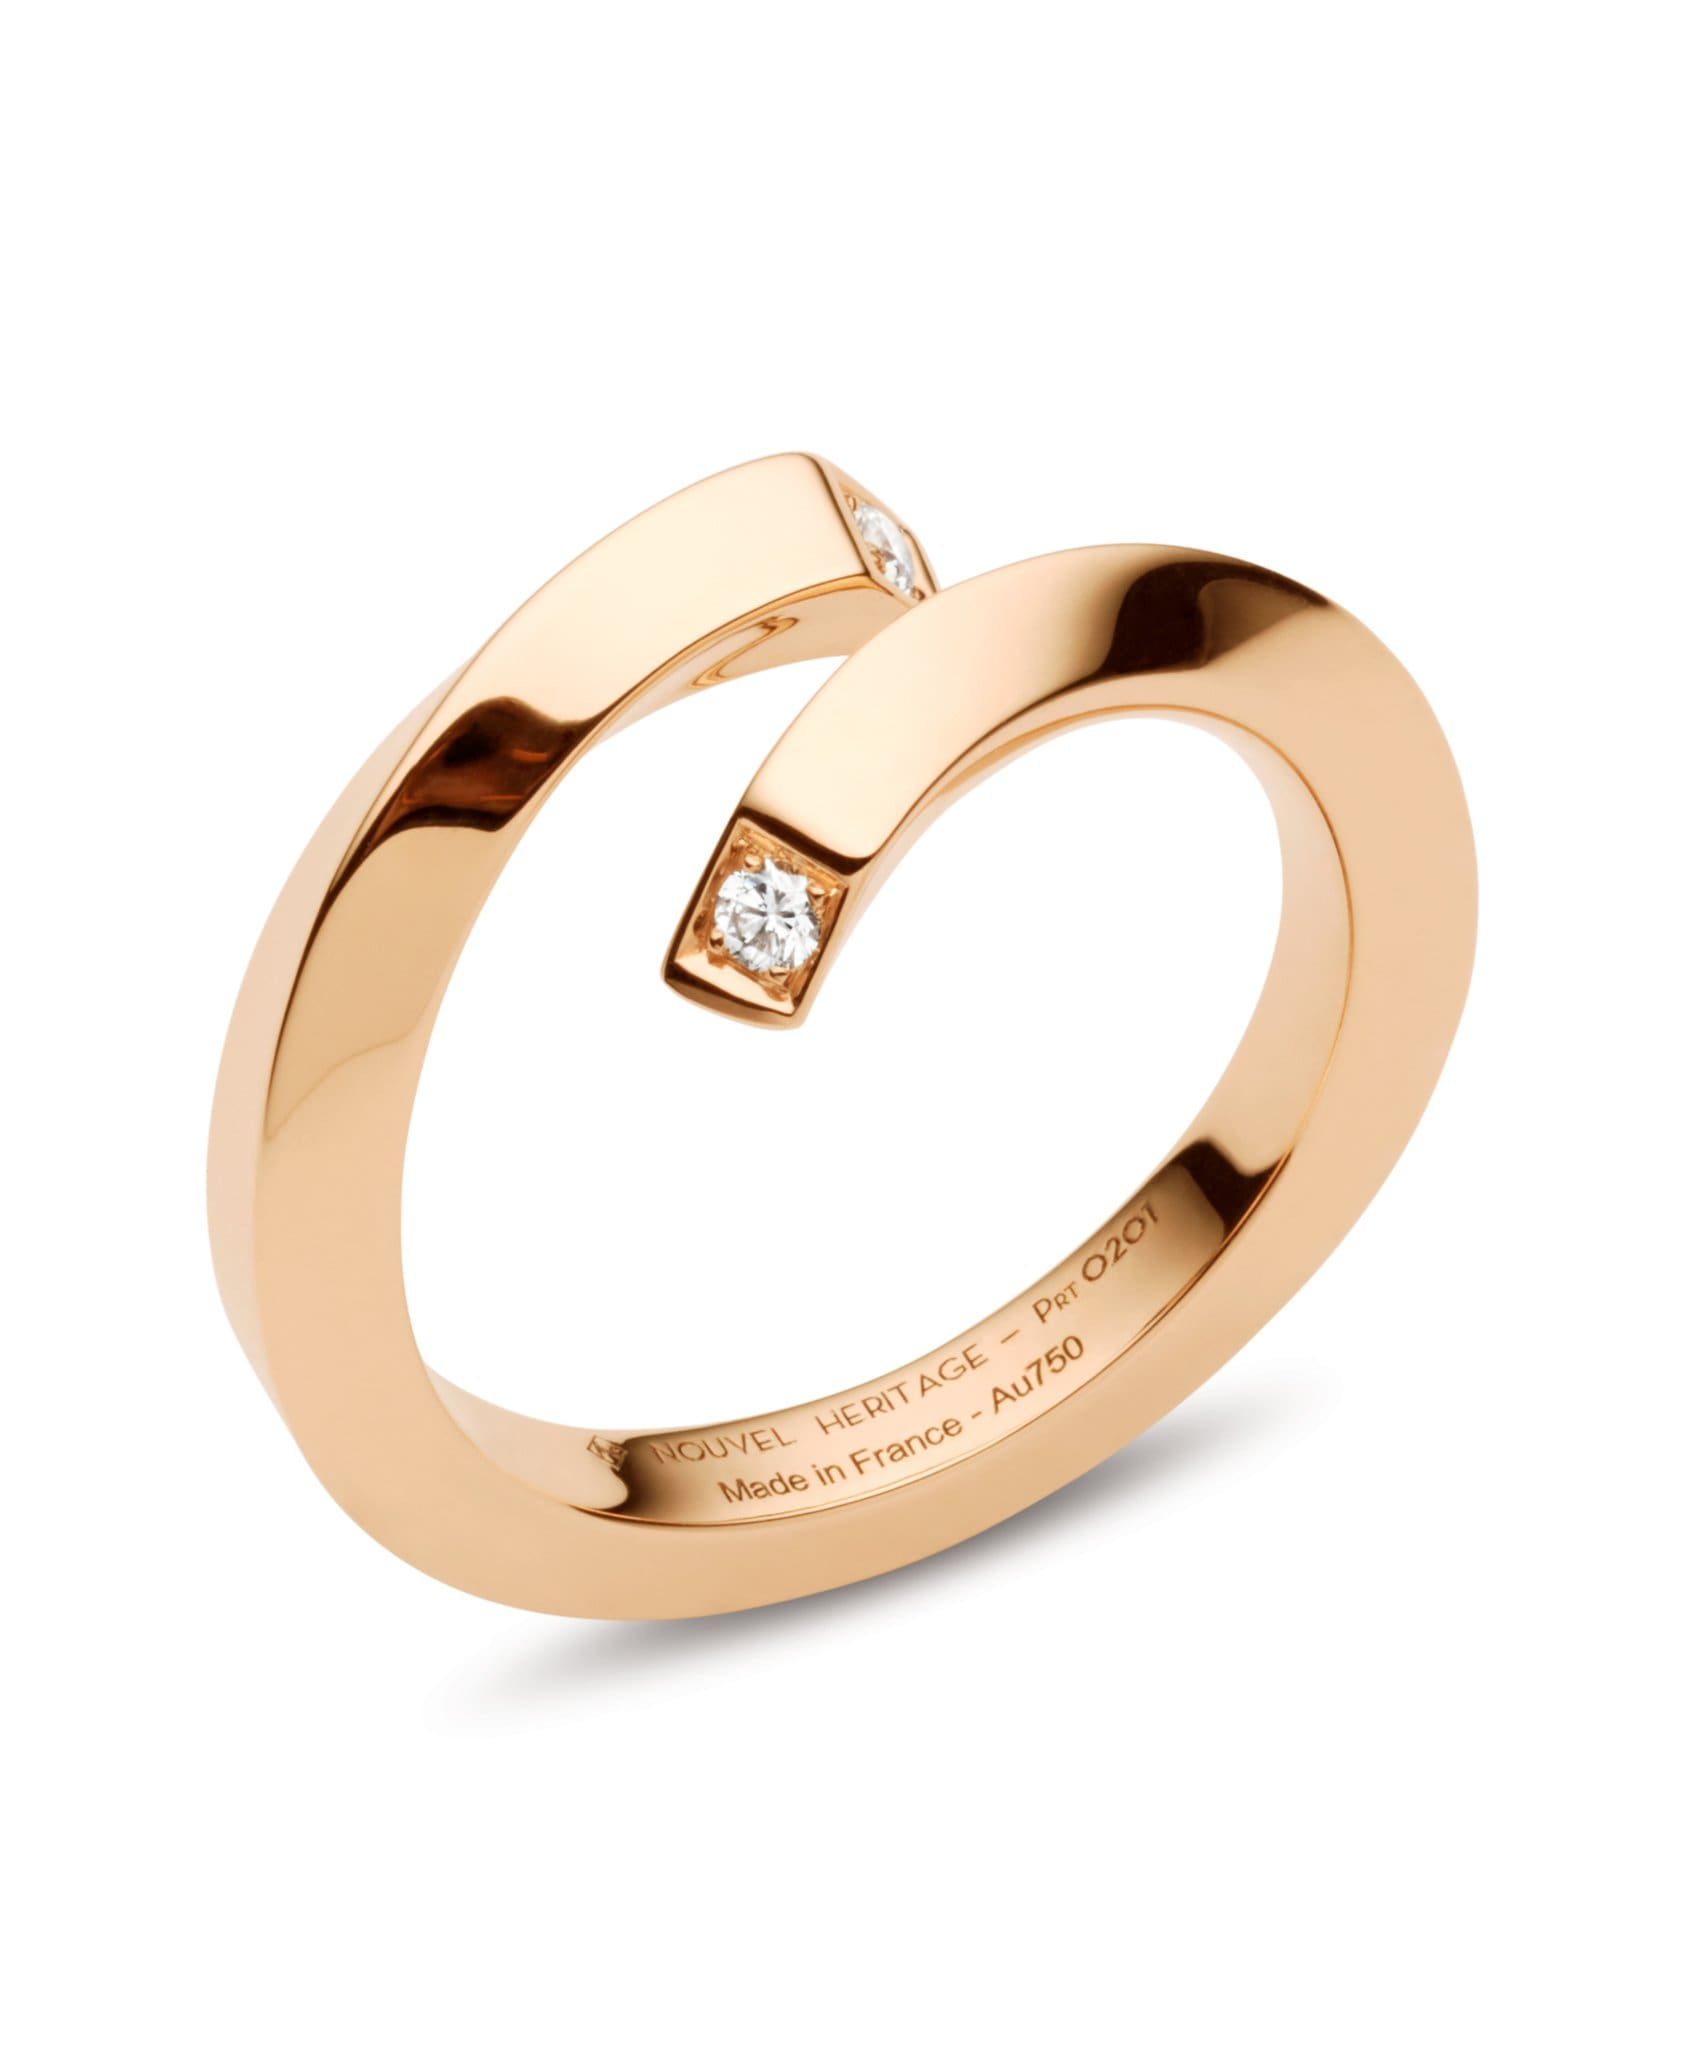 Gold Thread Ring: Discover Luxury Fine Jewelry | Nouvel Heritage || Rose Gold